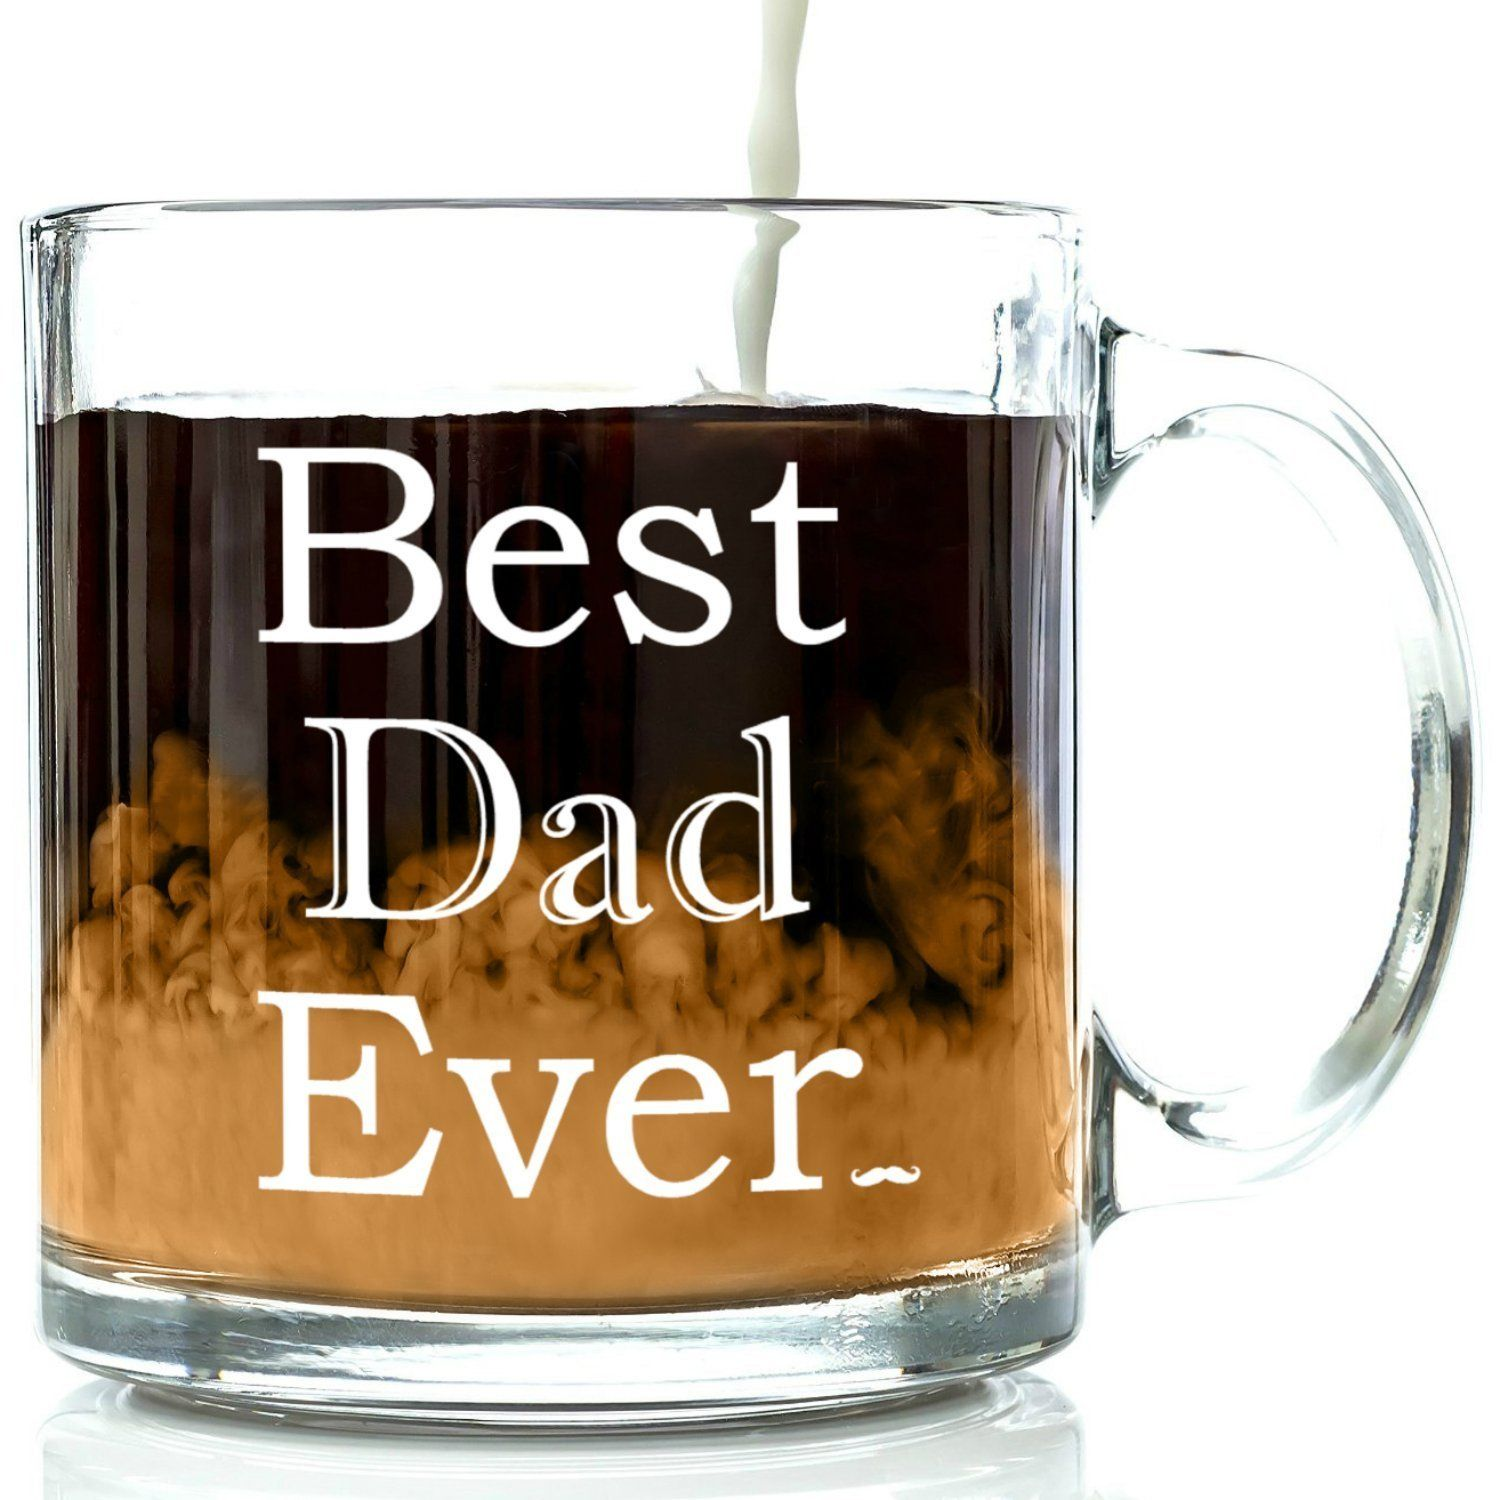 """Best Dad Ever"" Coffee Mug Now Available for a Limited"